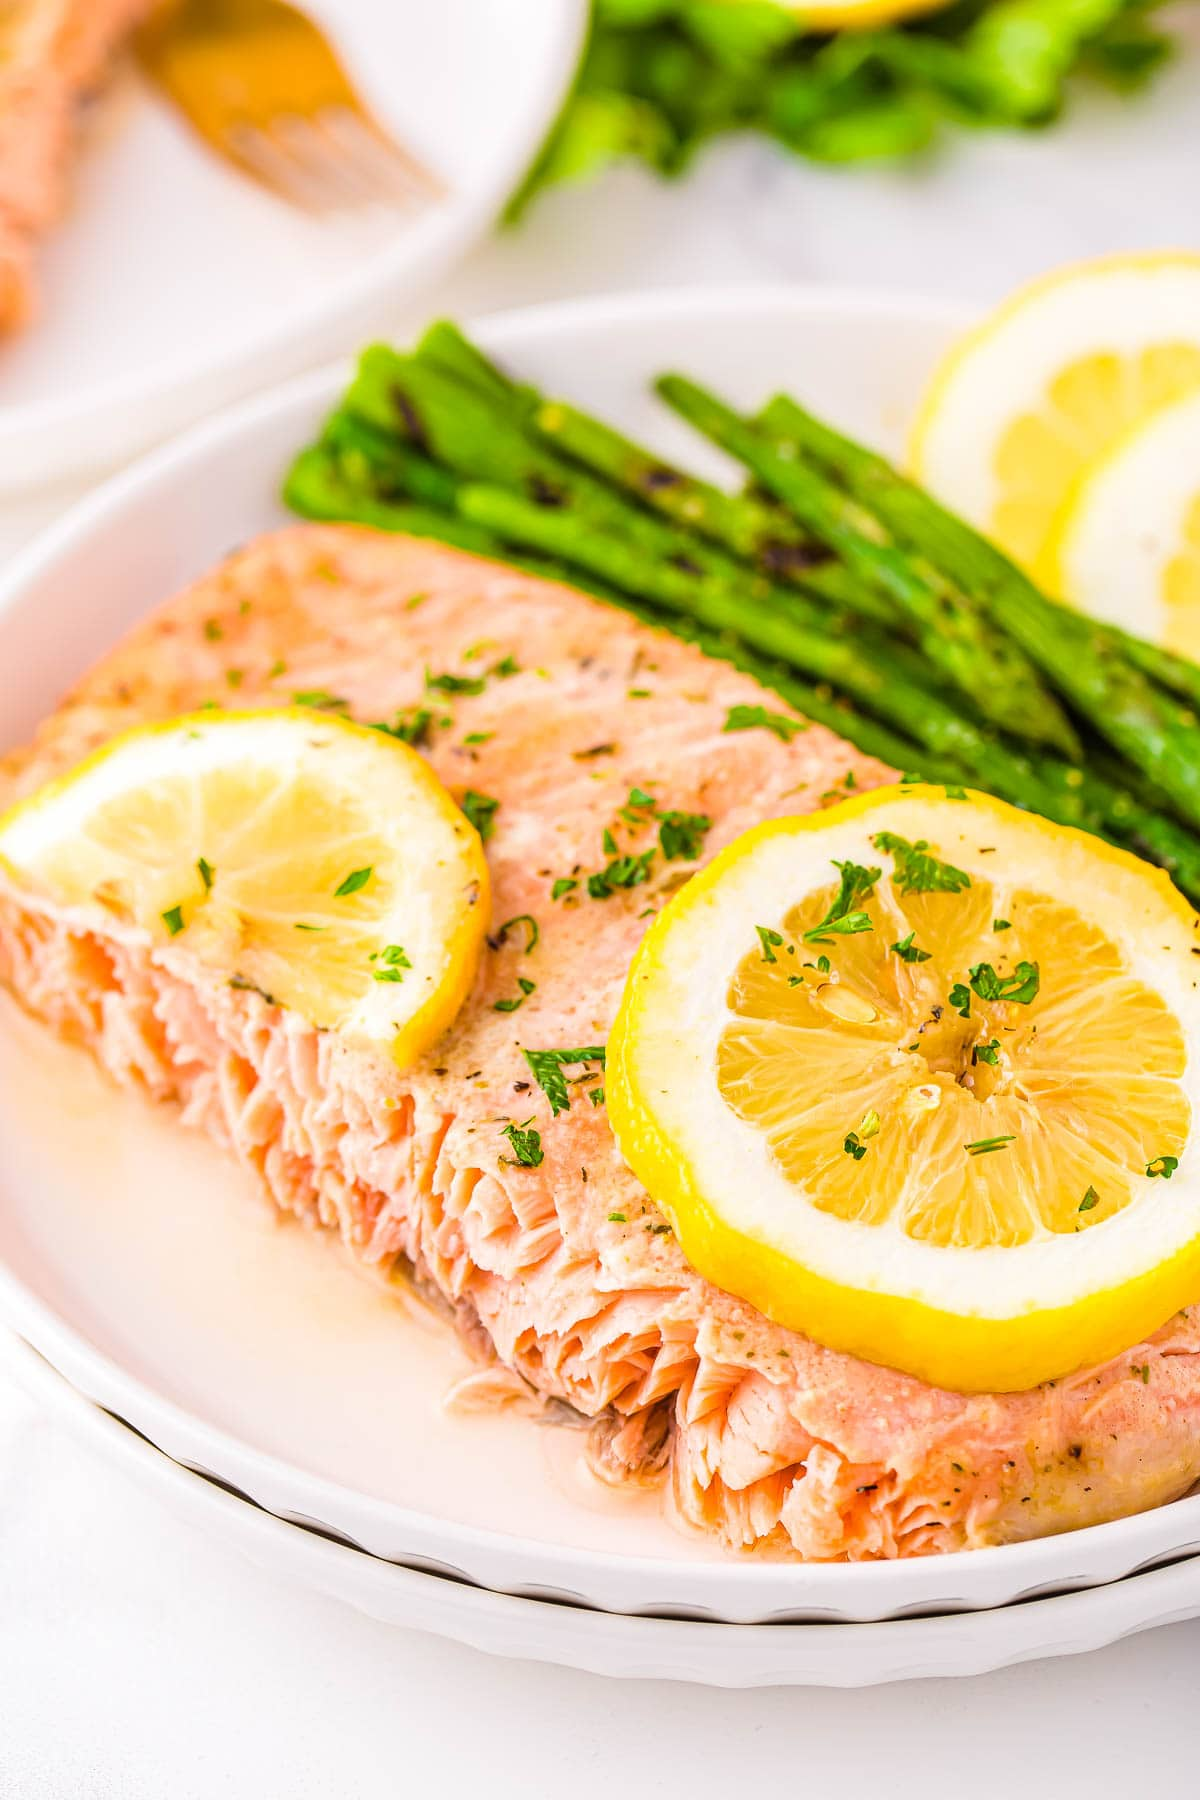 piece of baked salmon plated with asparagus and fresh lemon slices sitting on white plate.